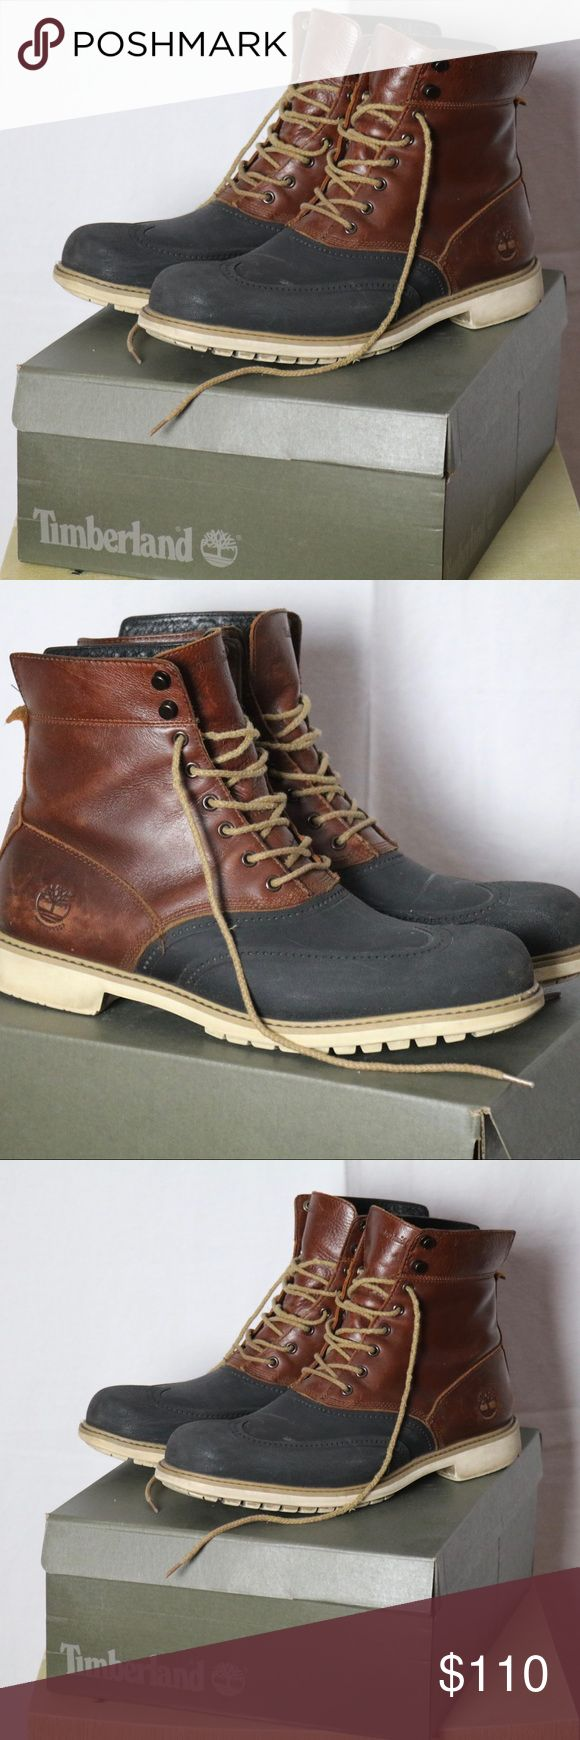 Timberland Duckboots Very lightly worn timberland duck boots.  Size 11.5  They are beautiful but too big for me. Timberland Shoes Boots